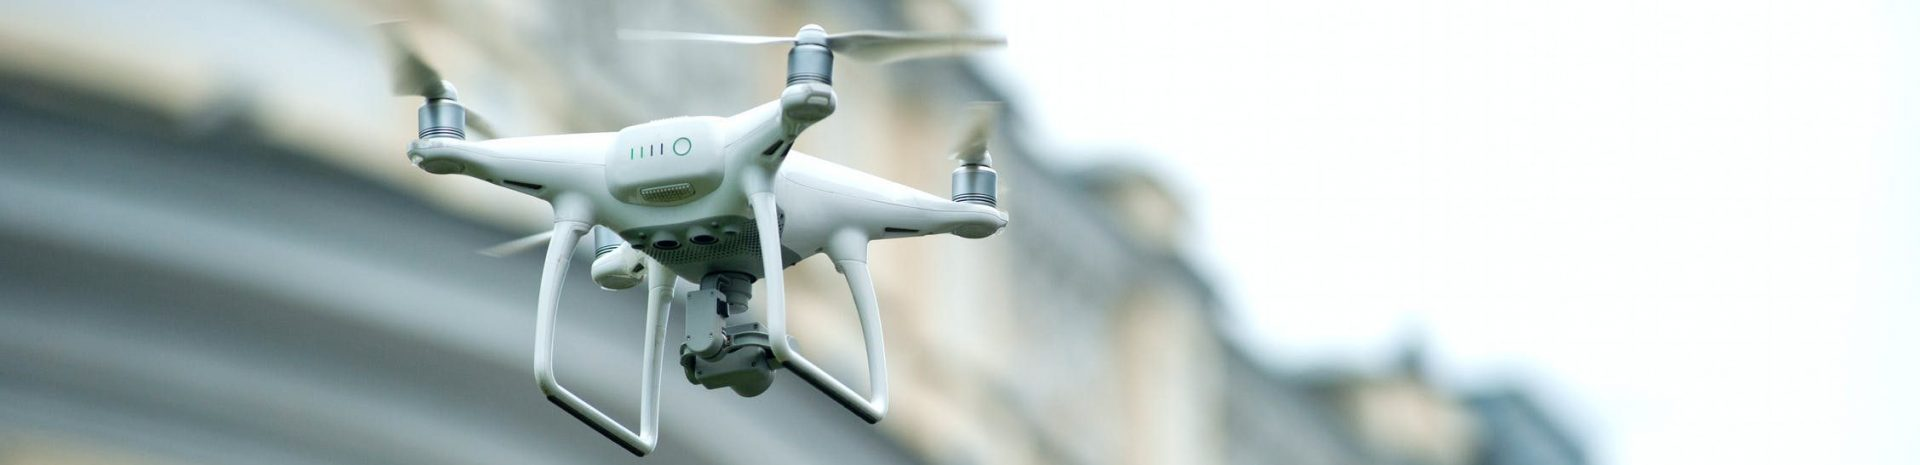 Drone for Surveying - Drone Site Surveys - Liverpool - UK